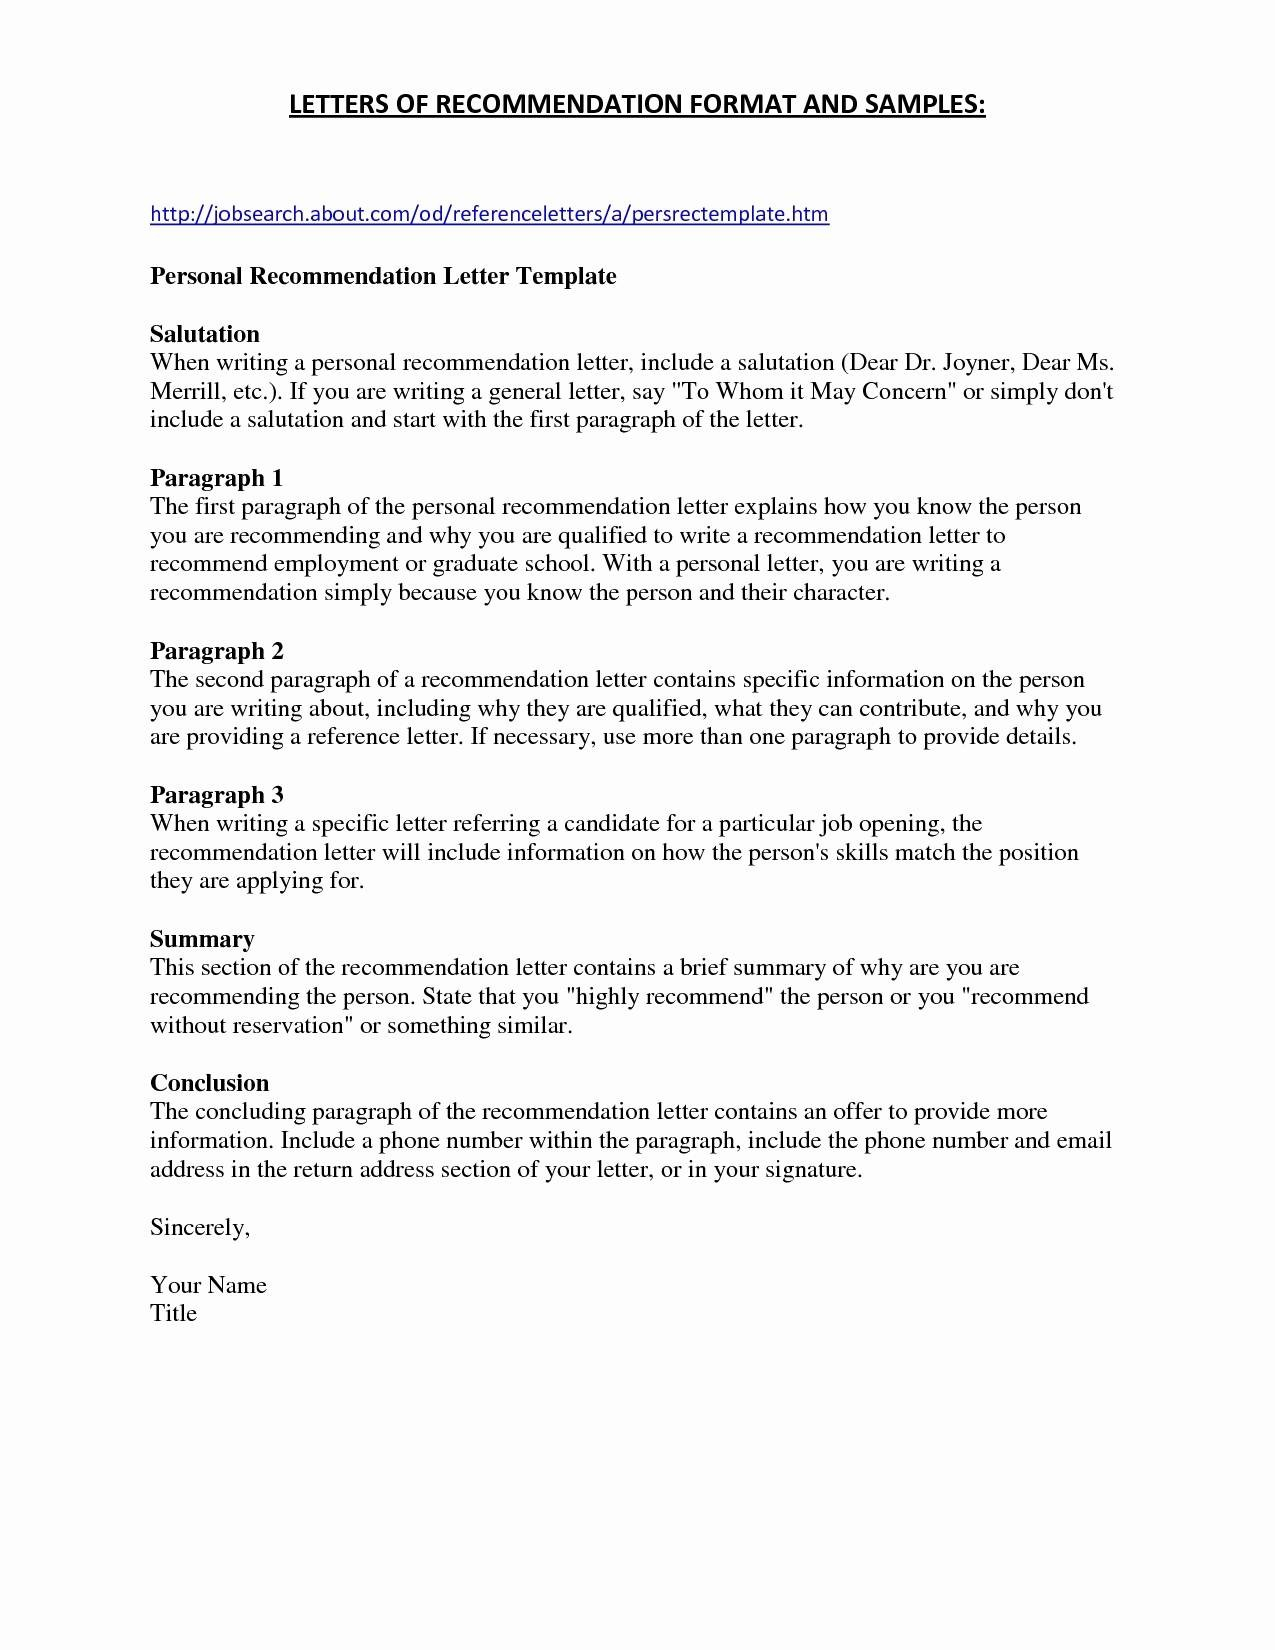 Renters Insurance Letter Template - How to Write A Cover Letter for A Rental Application